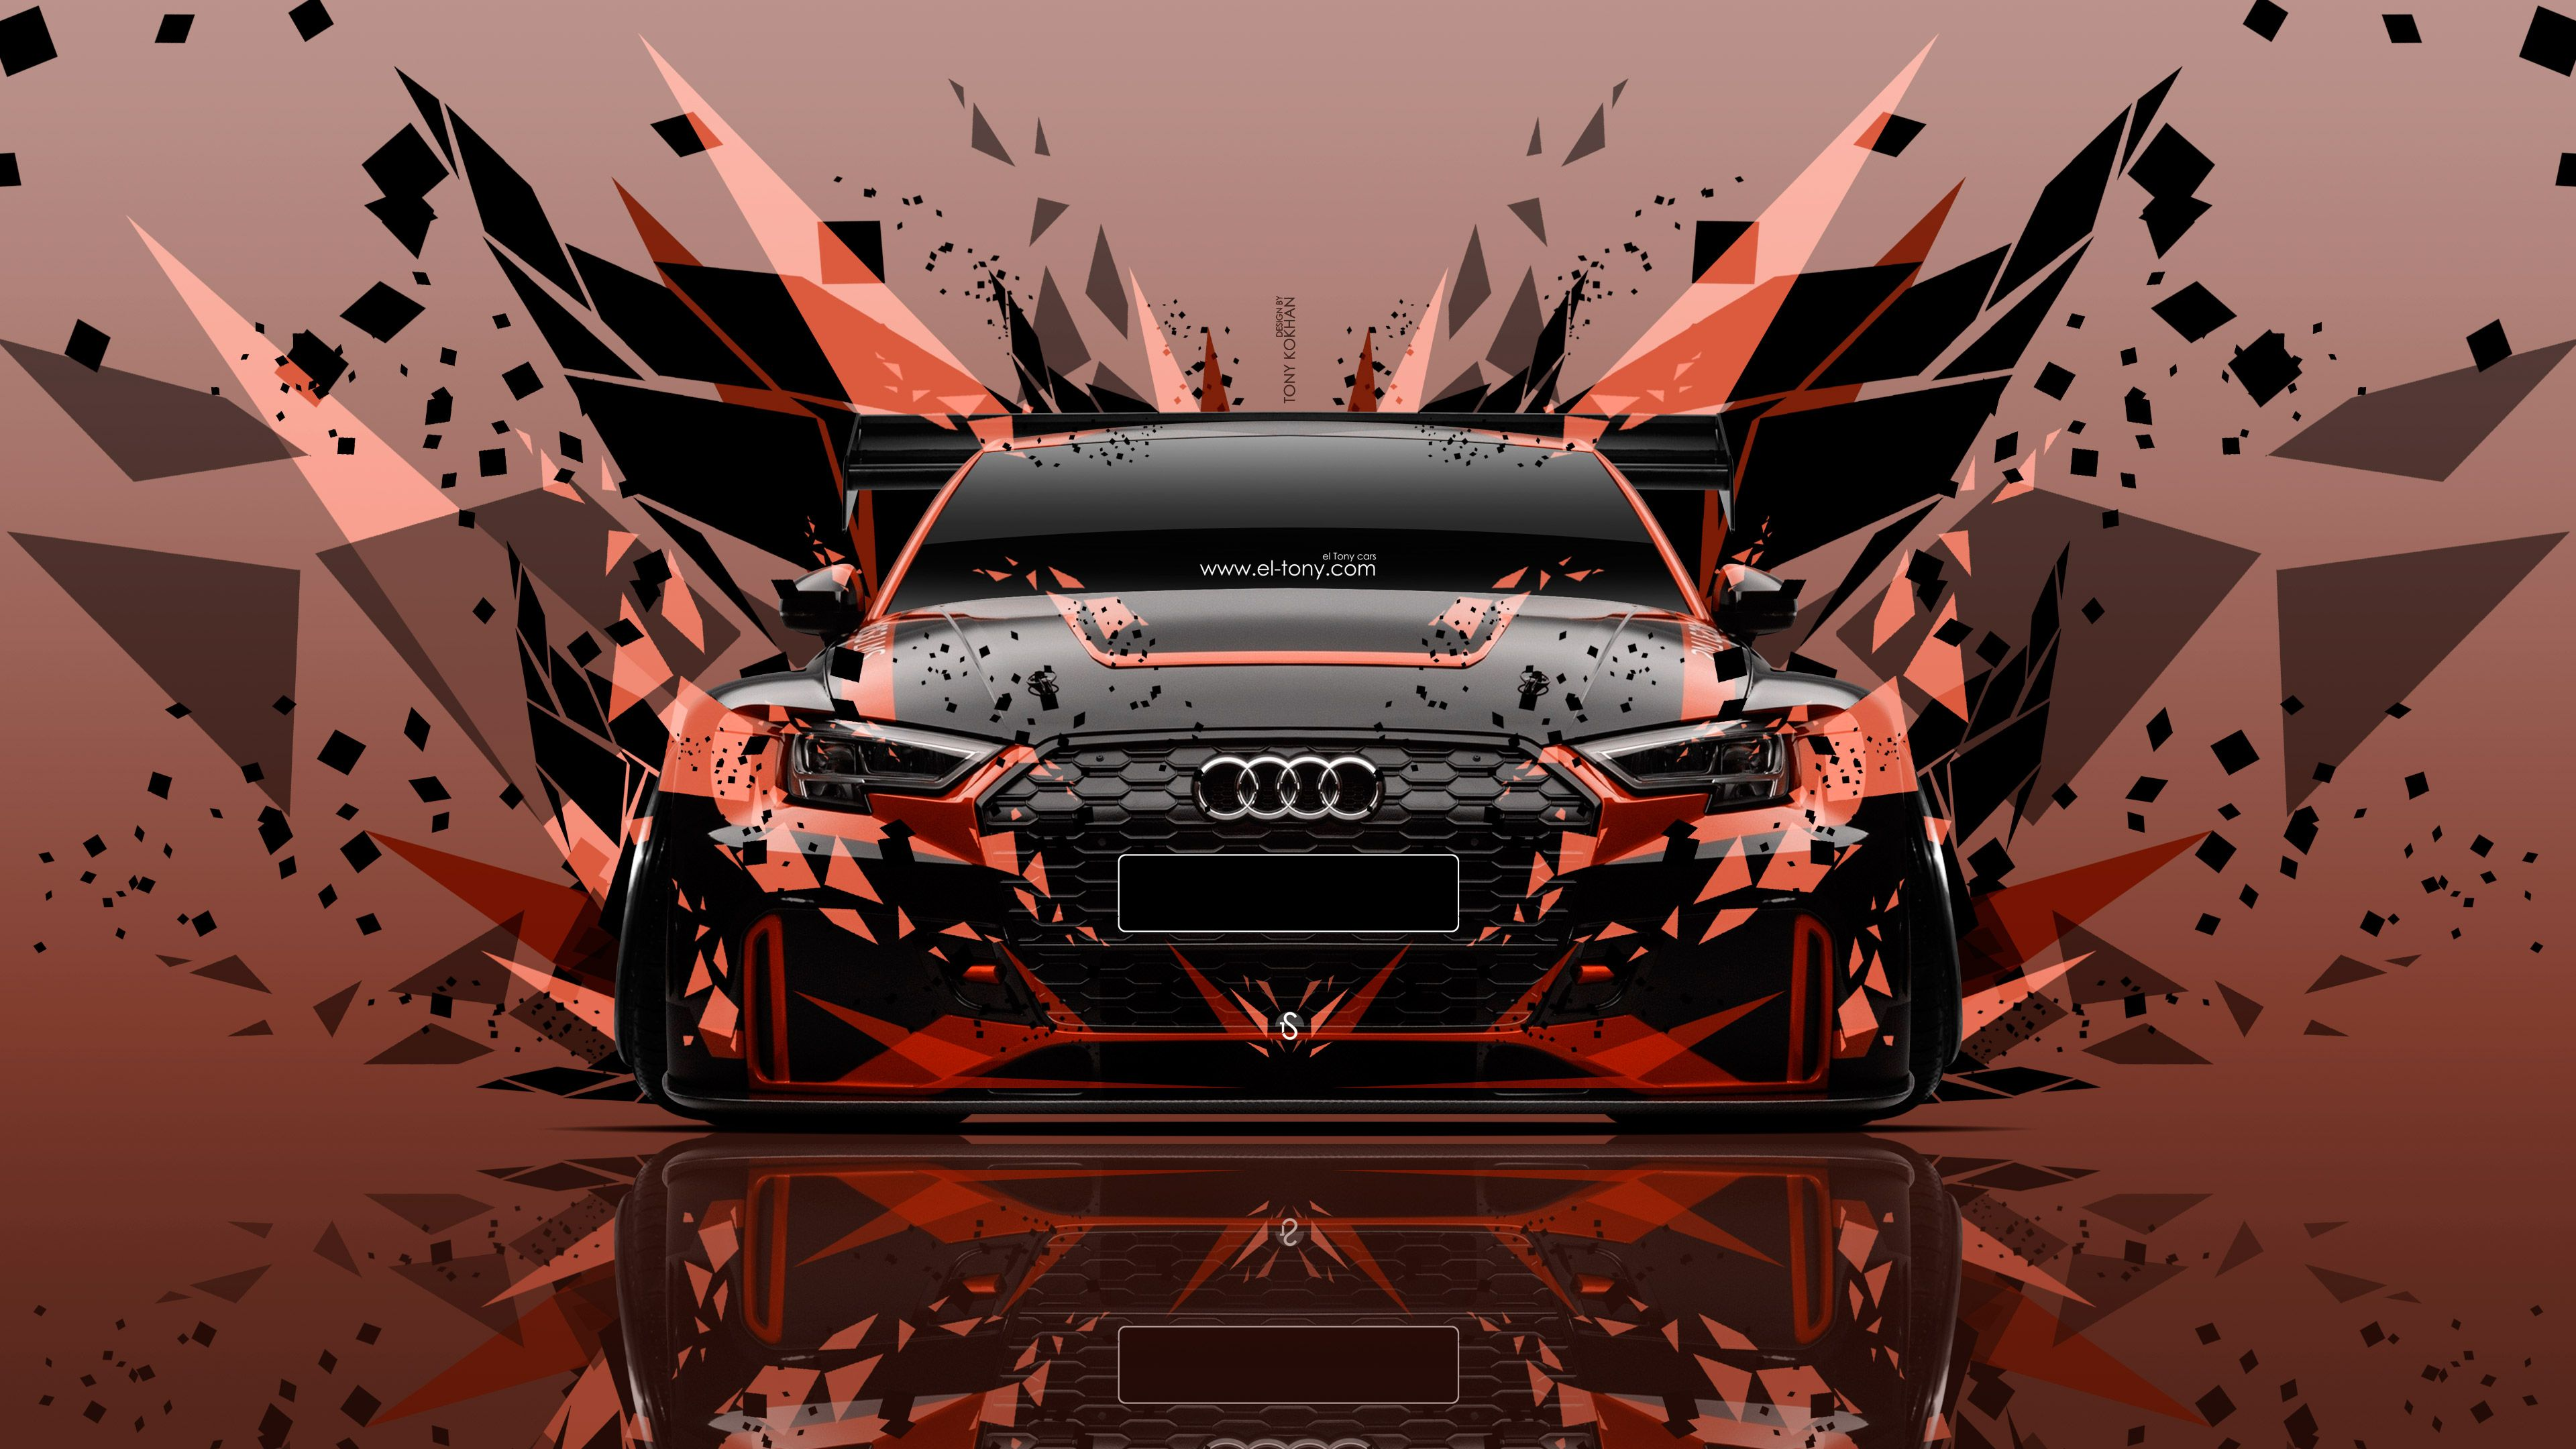 Audi RS3 LMS Sport Tuning Front Super Angle Style Car 2017